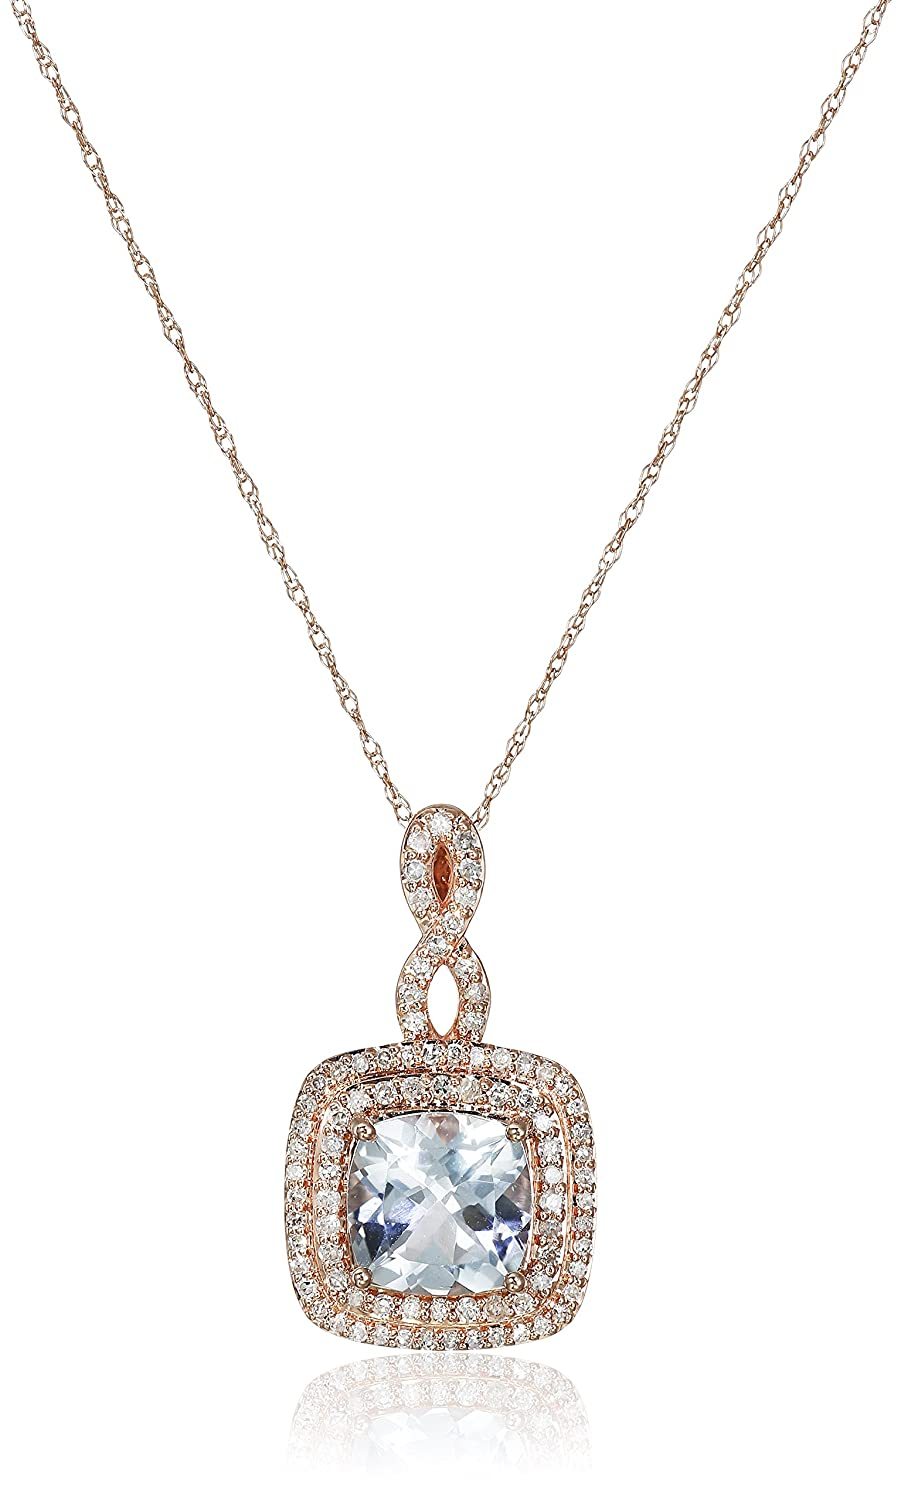 """10k Pink Gold Double Frame Cushion Cut Aqua with Infinity Diamond Accent Pendant Necklace (1/3cttw, I-J Color, I2-I3 Clarity), 18"""""""